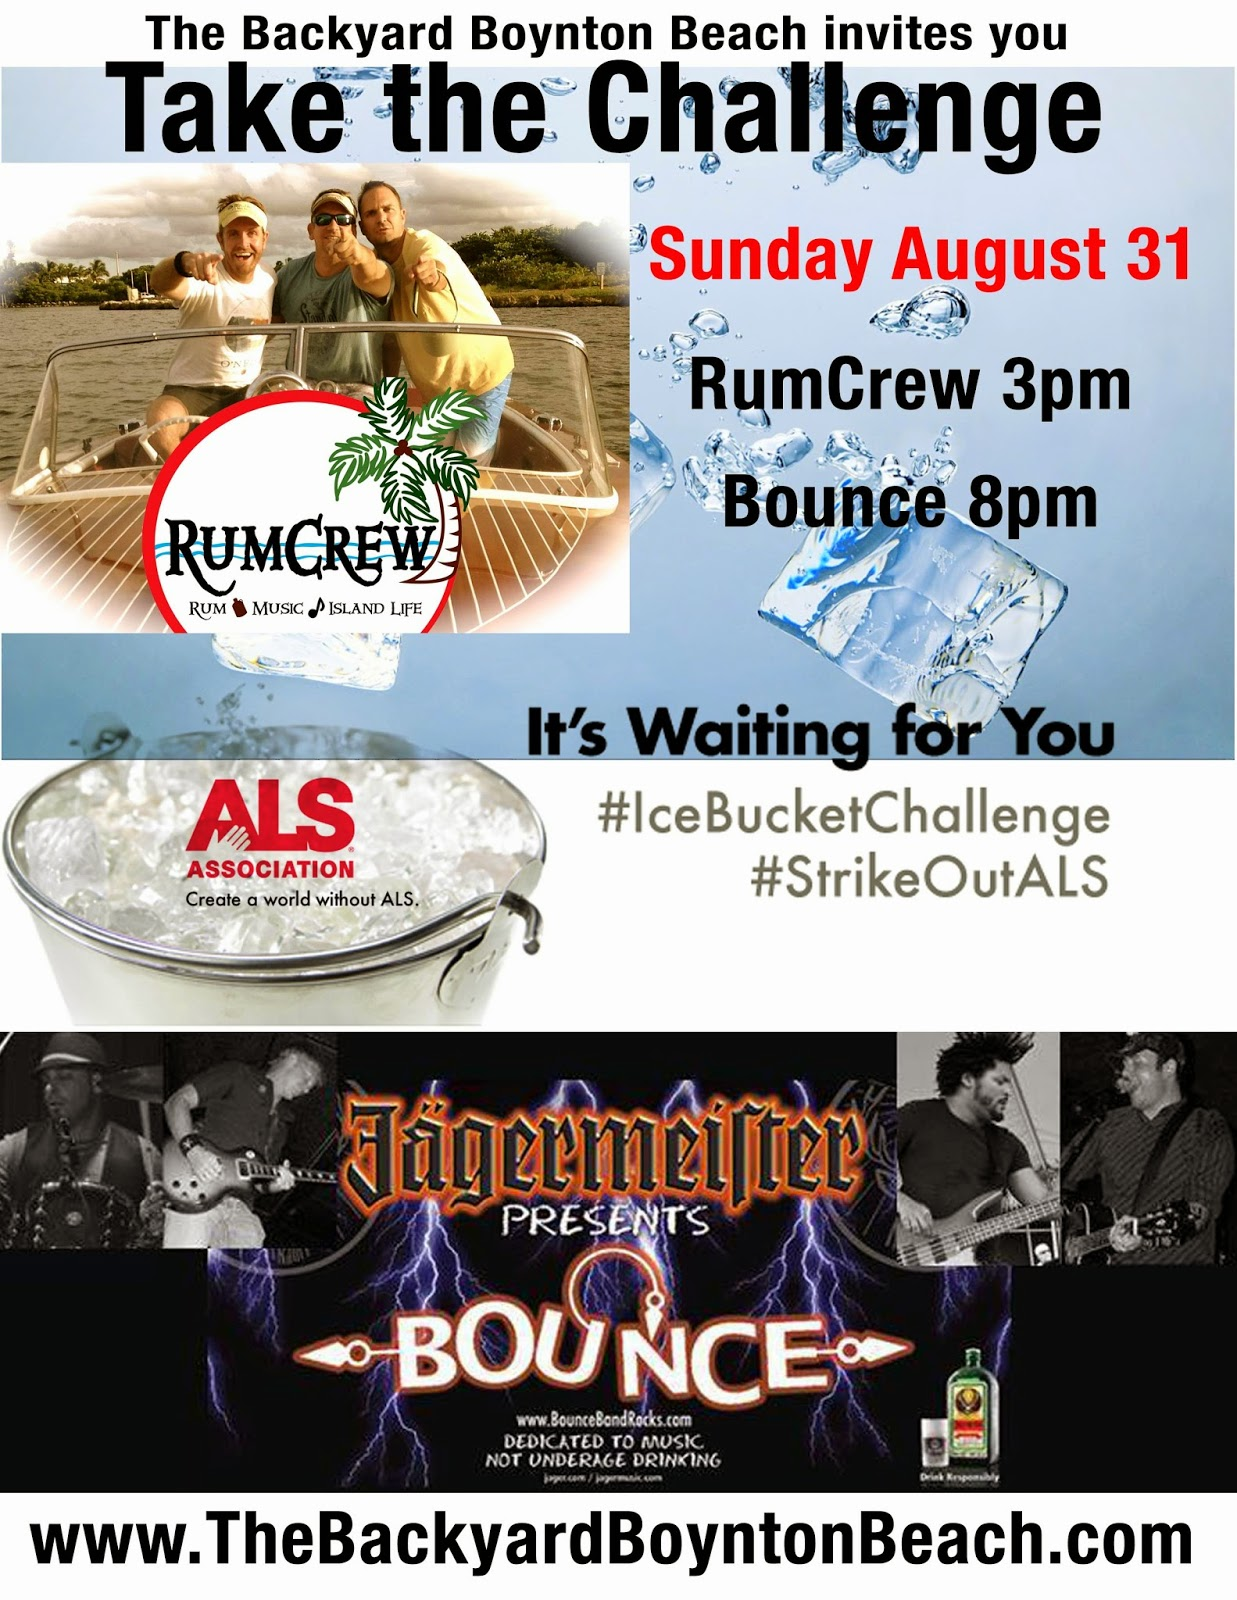 als ice bucket challenge this sunday at the backyard boynton beach